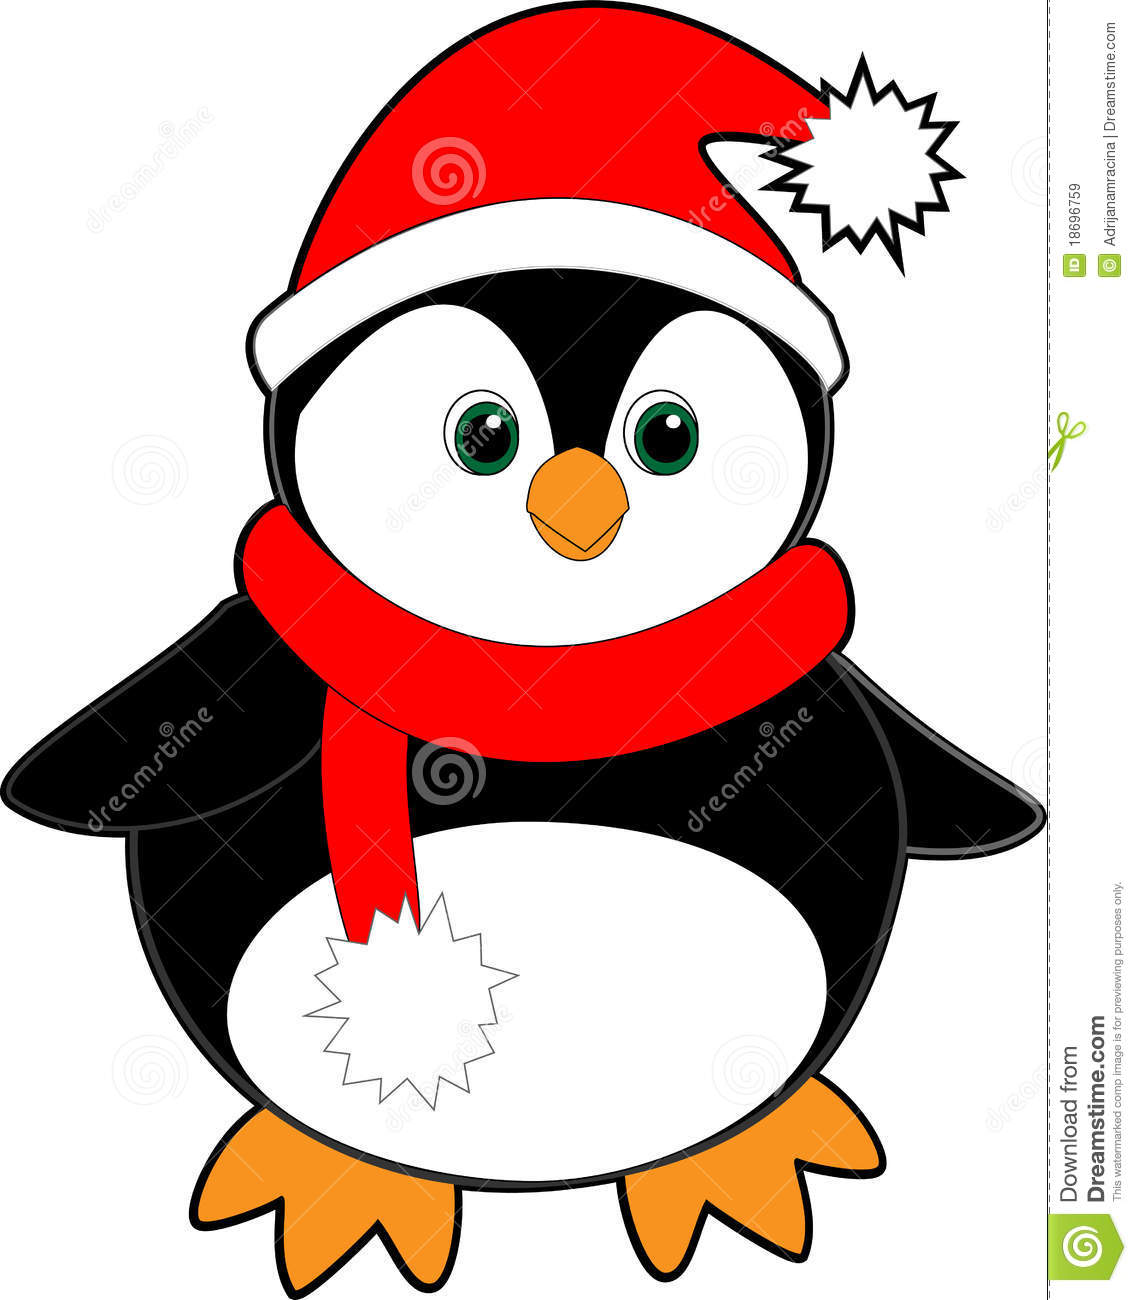 635d4ccf060 Black Penguin With A Red Santa Hat And Scarf Stock Illustration ...